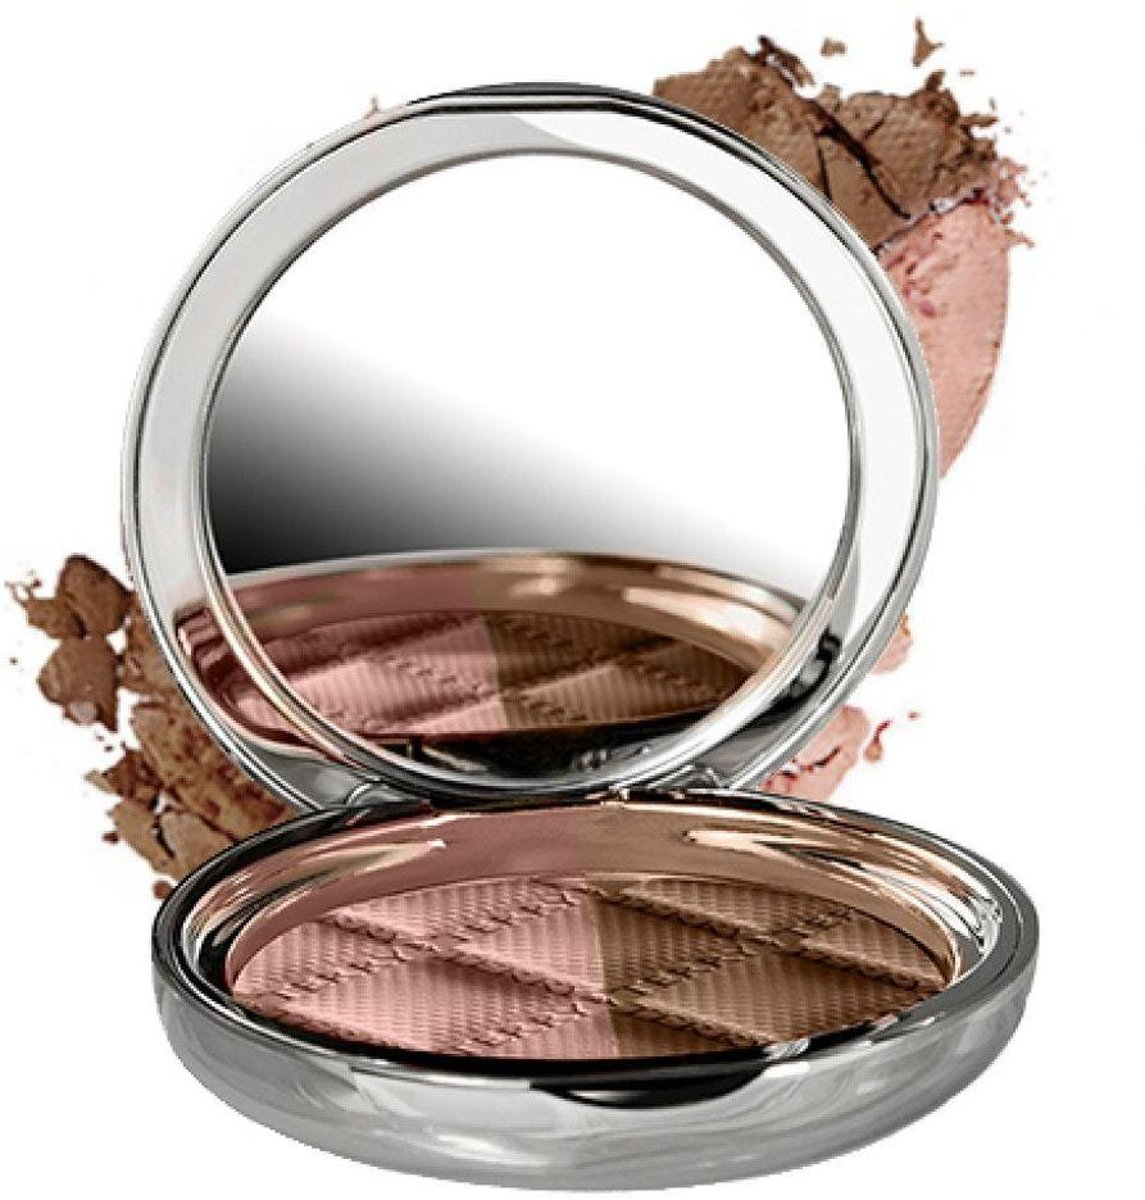 By Terry Terrybly Densiliss Contouring Powder - Fresh Contrast